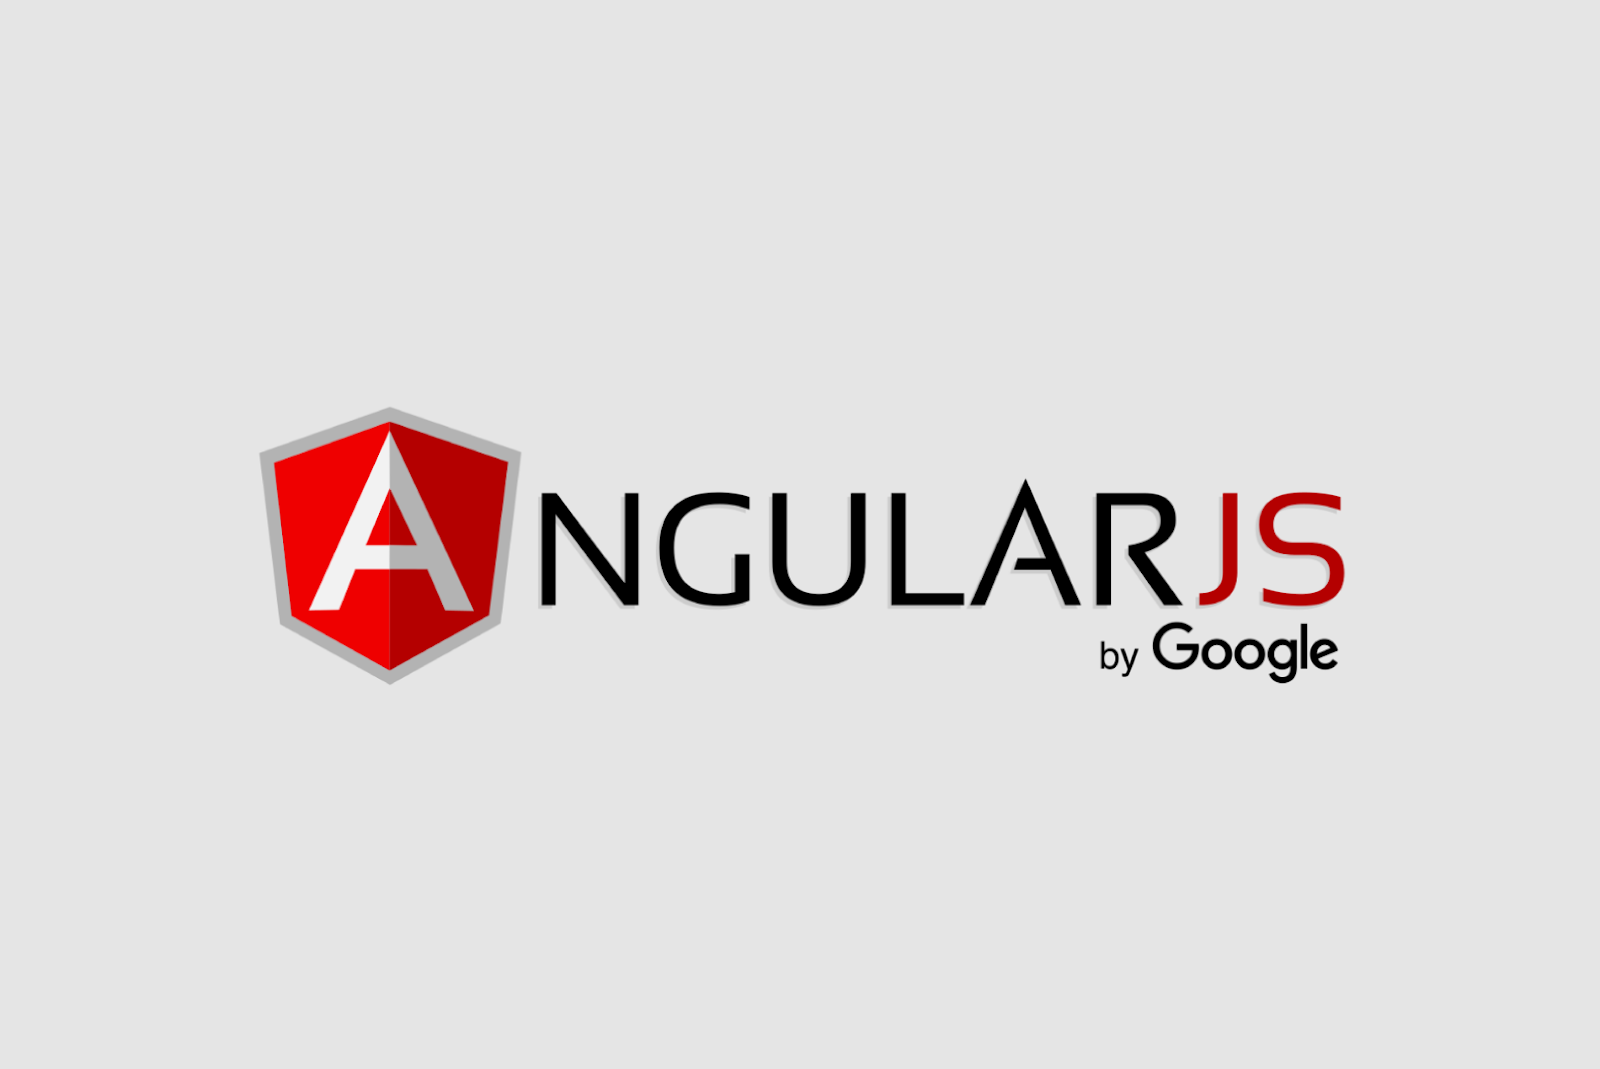 Angularjs supported by Google